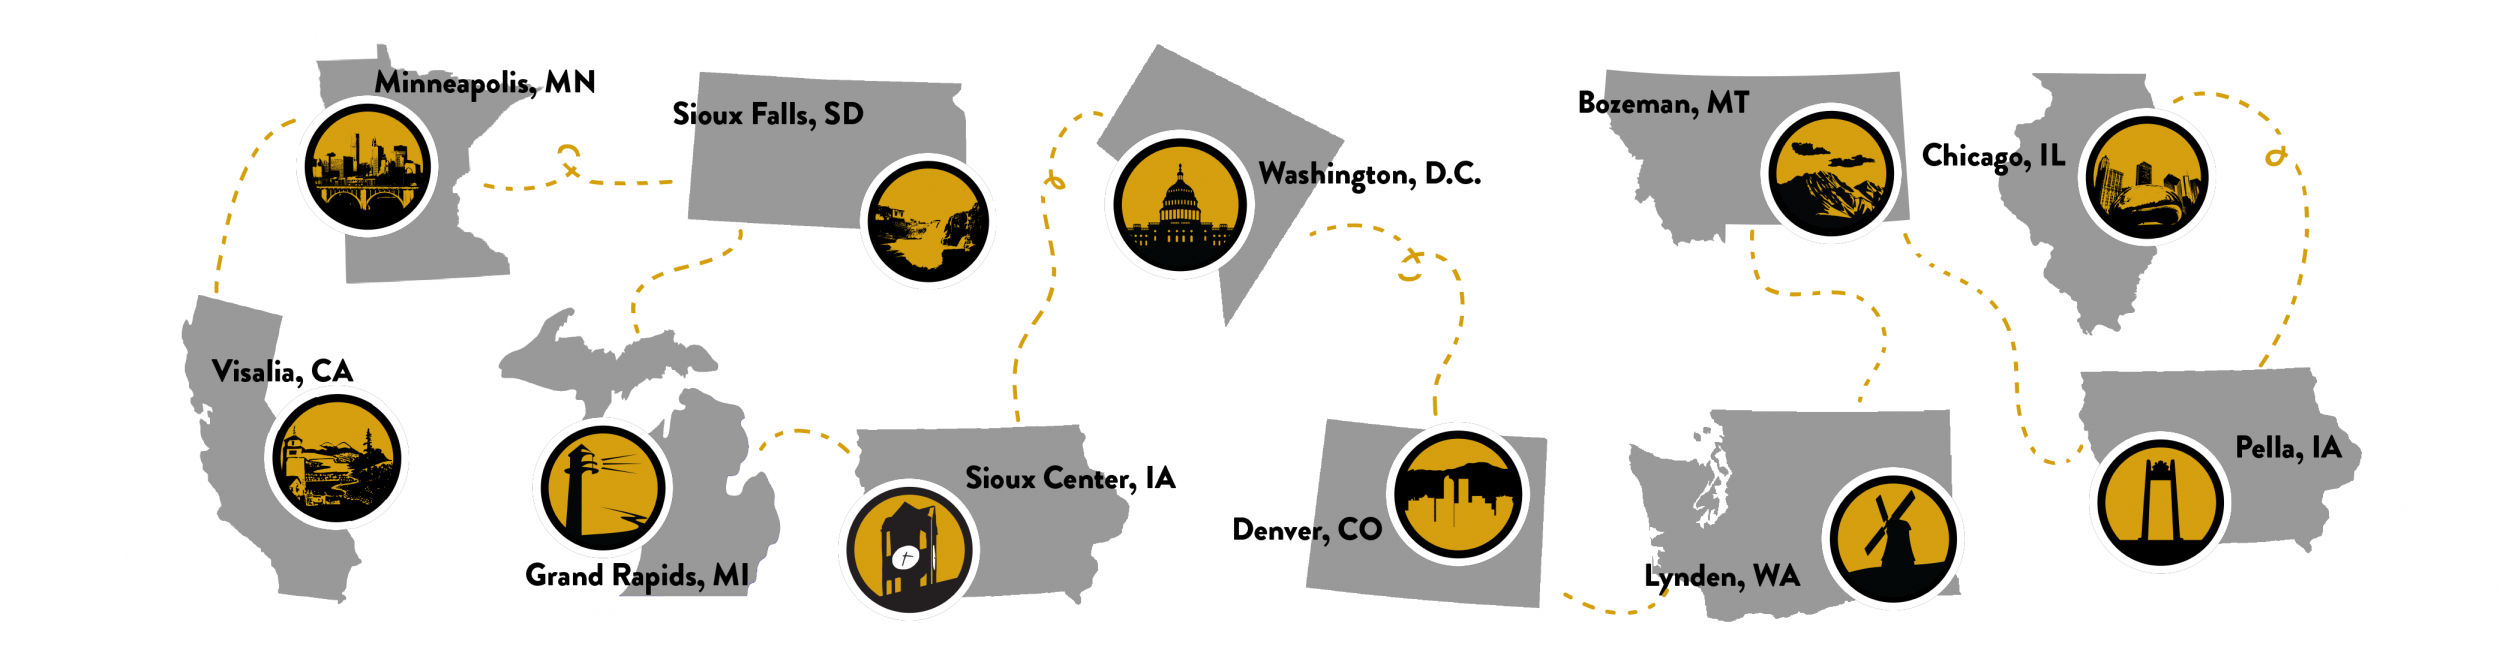 A design of different states with icons representing each one.